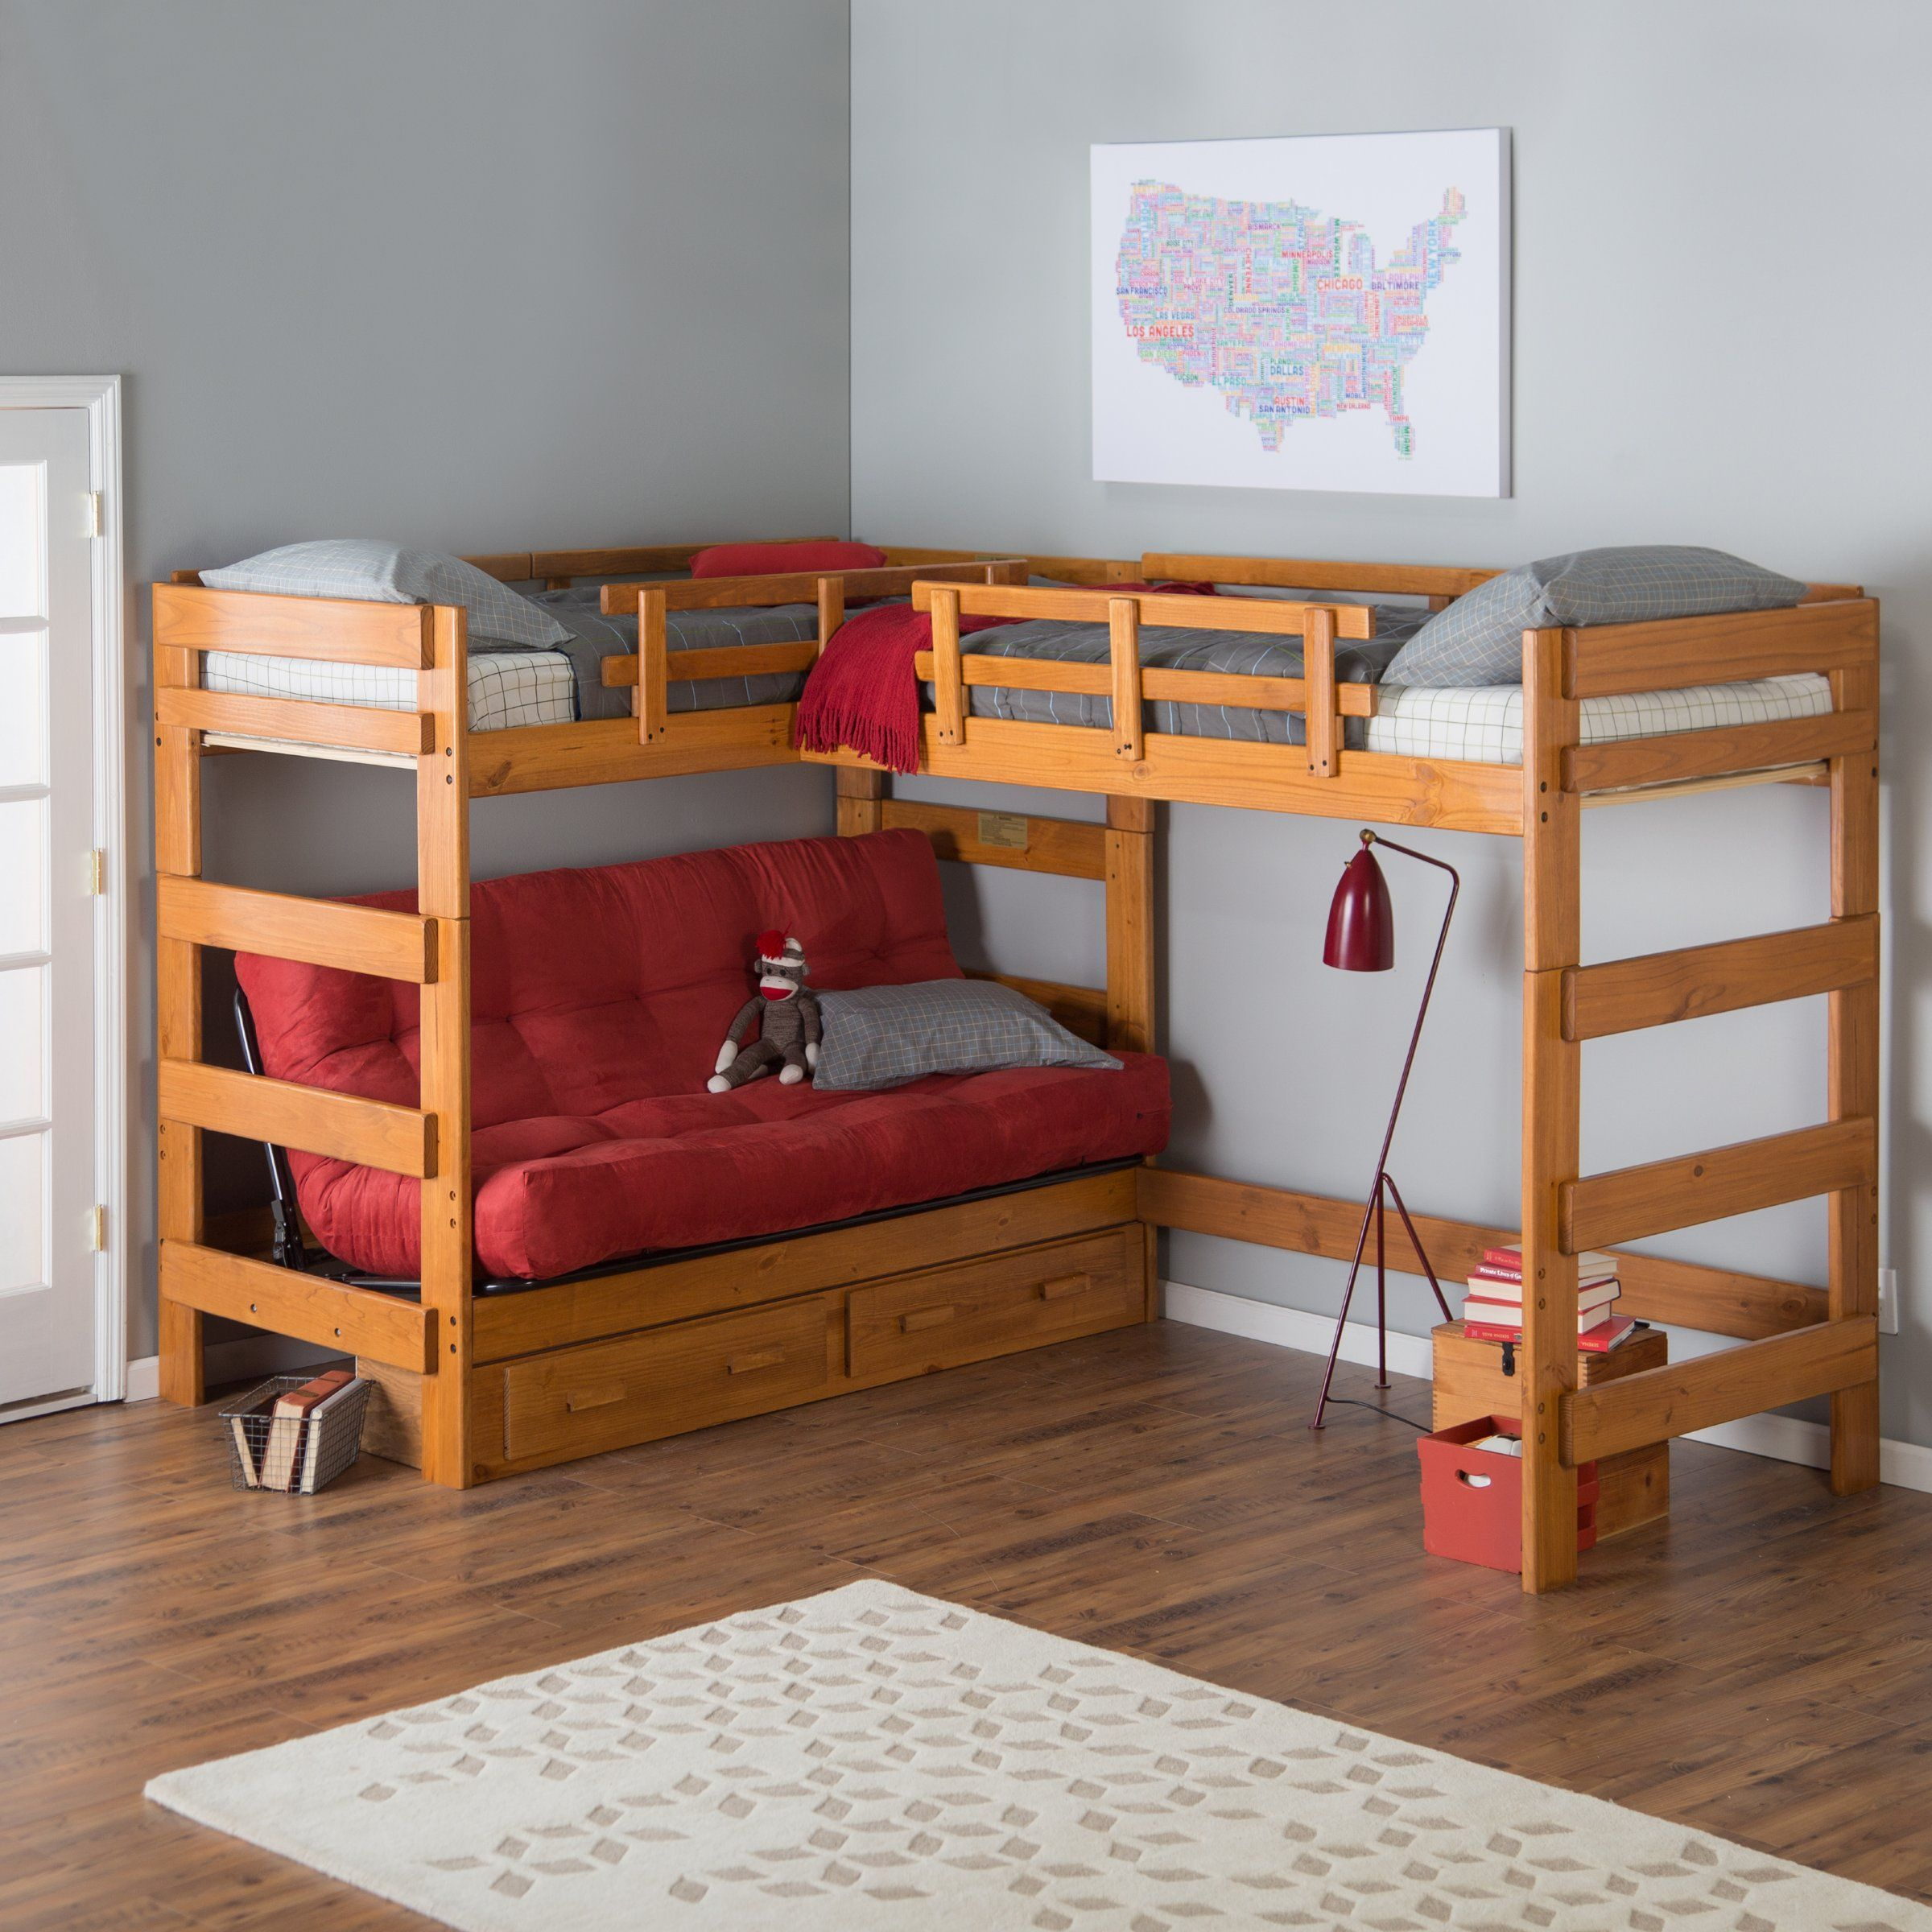 Woodcrest Heartland Futon Bunk Bed With Extra Loft Kids Storage Beds At Hayneedle